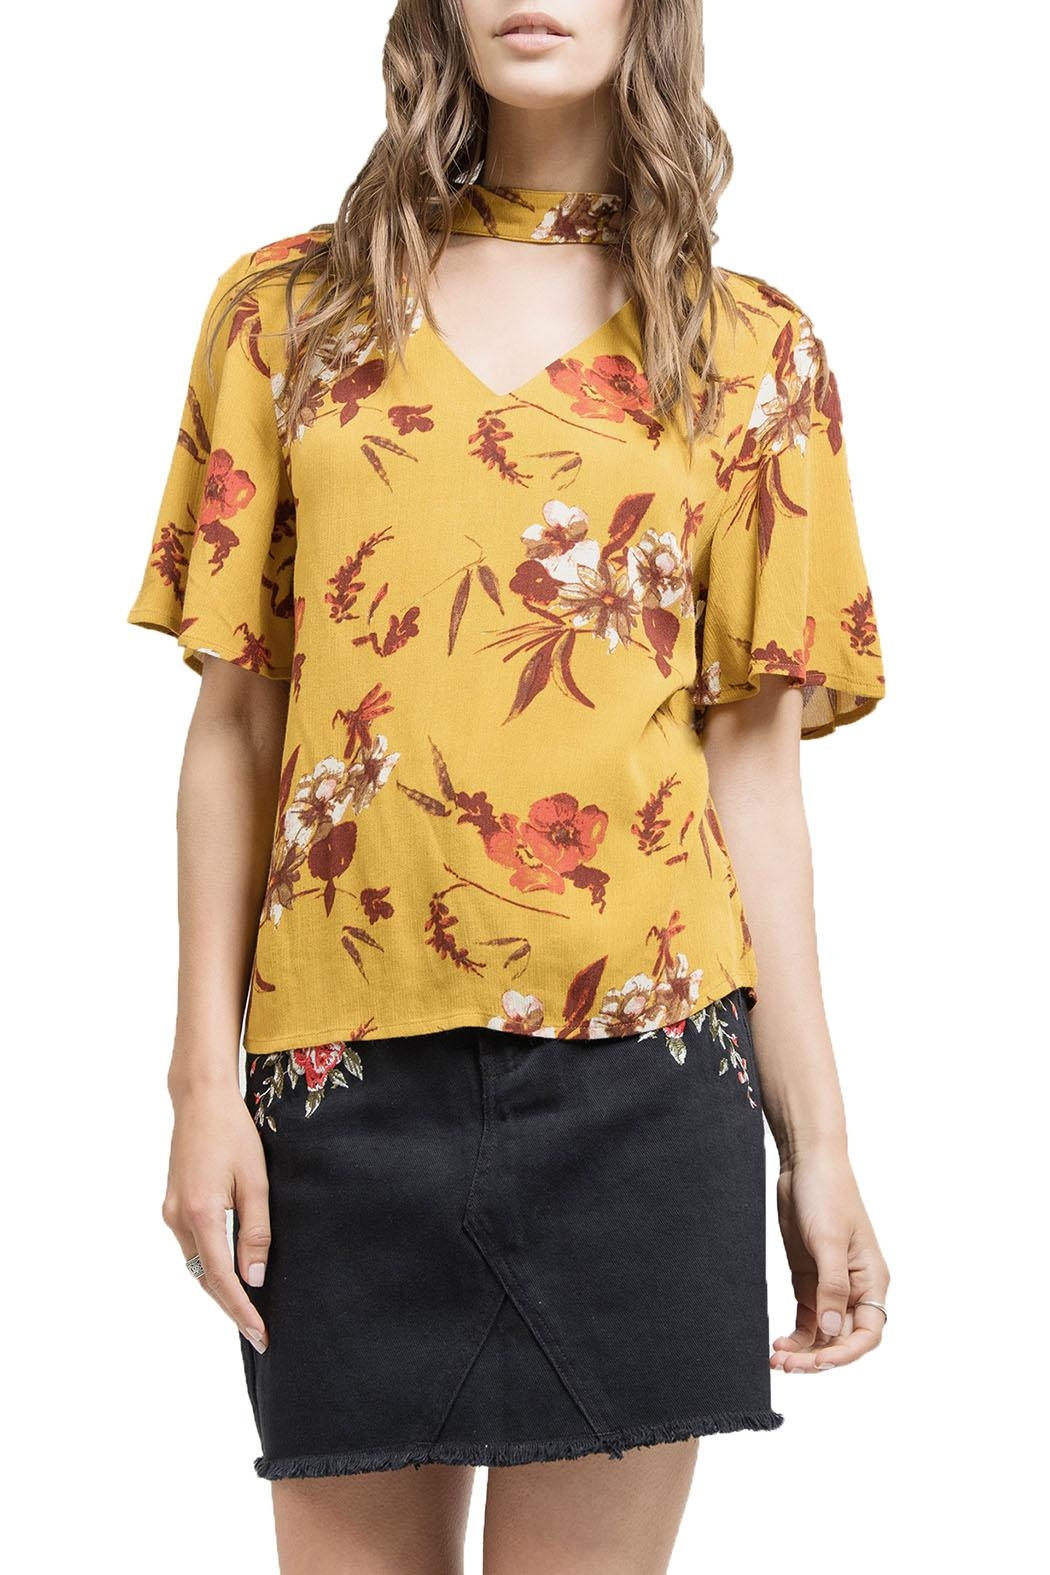 Blu Pepper V-Neck Floral Shirt - Main Image